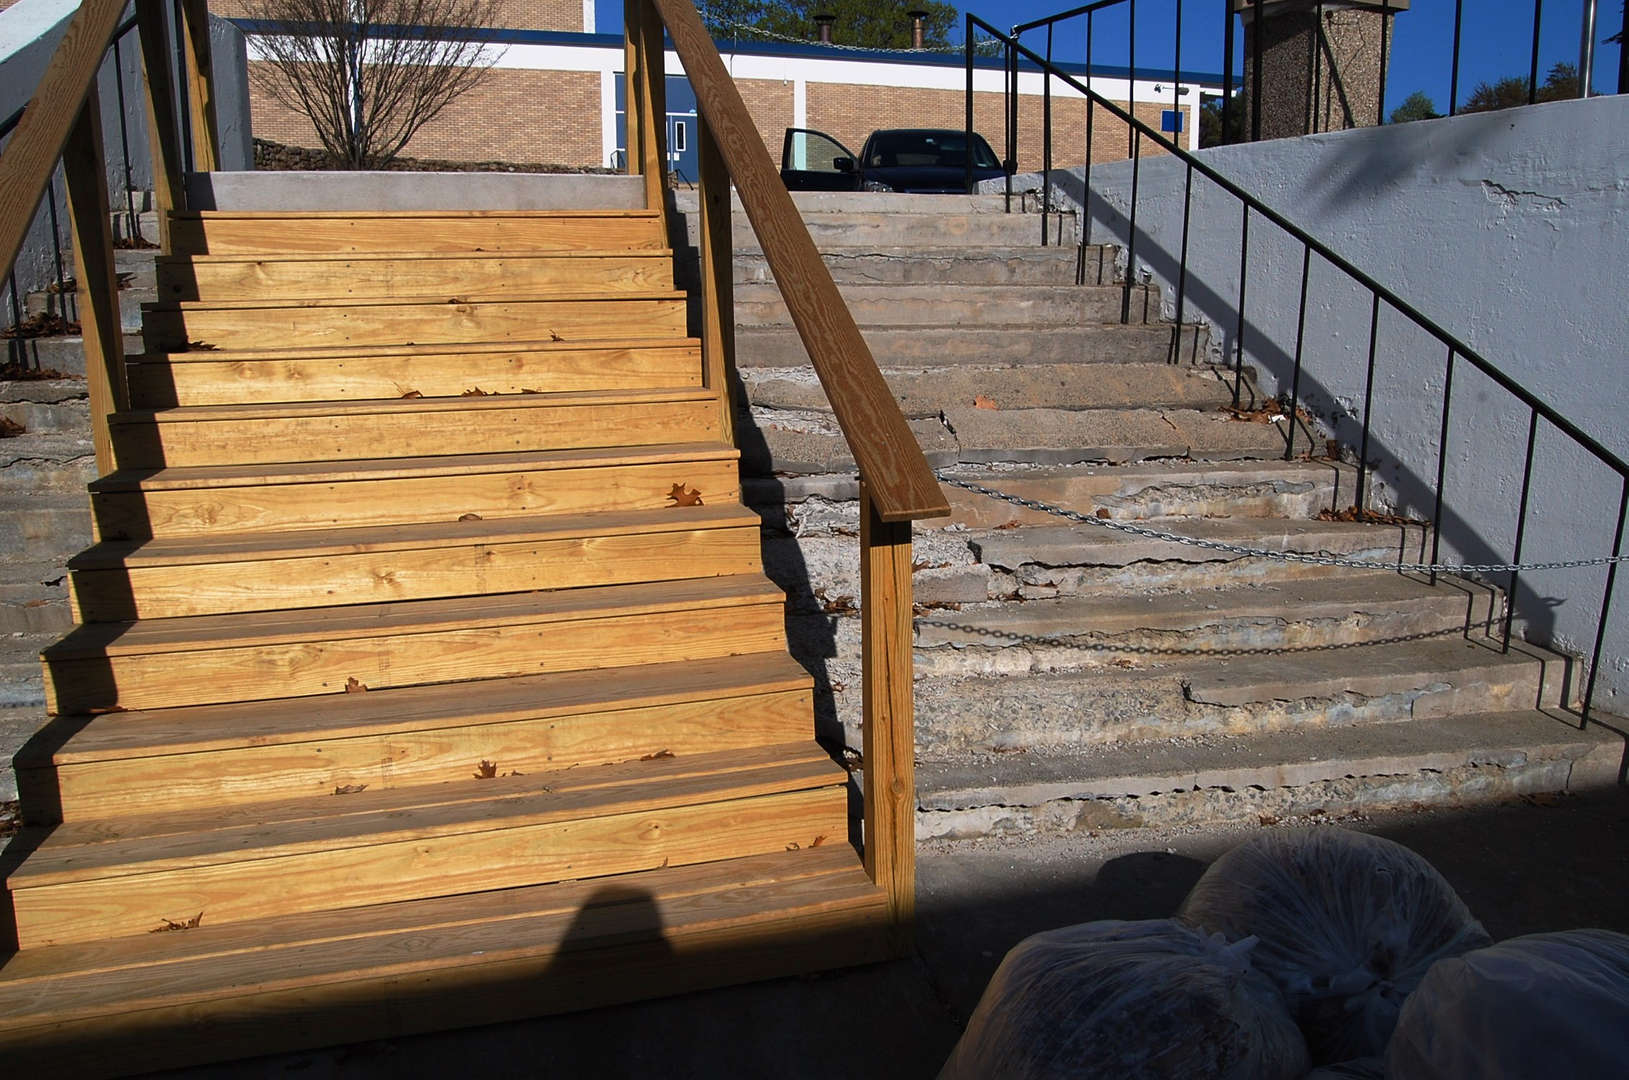 2015-16 School Budget - another view of PRHS exterior stairs